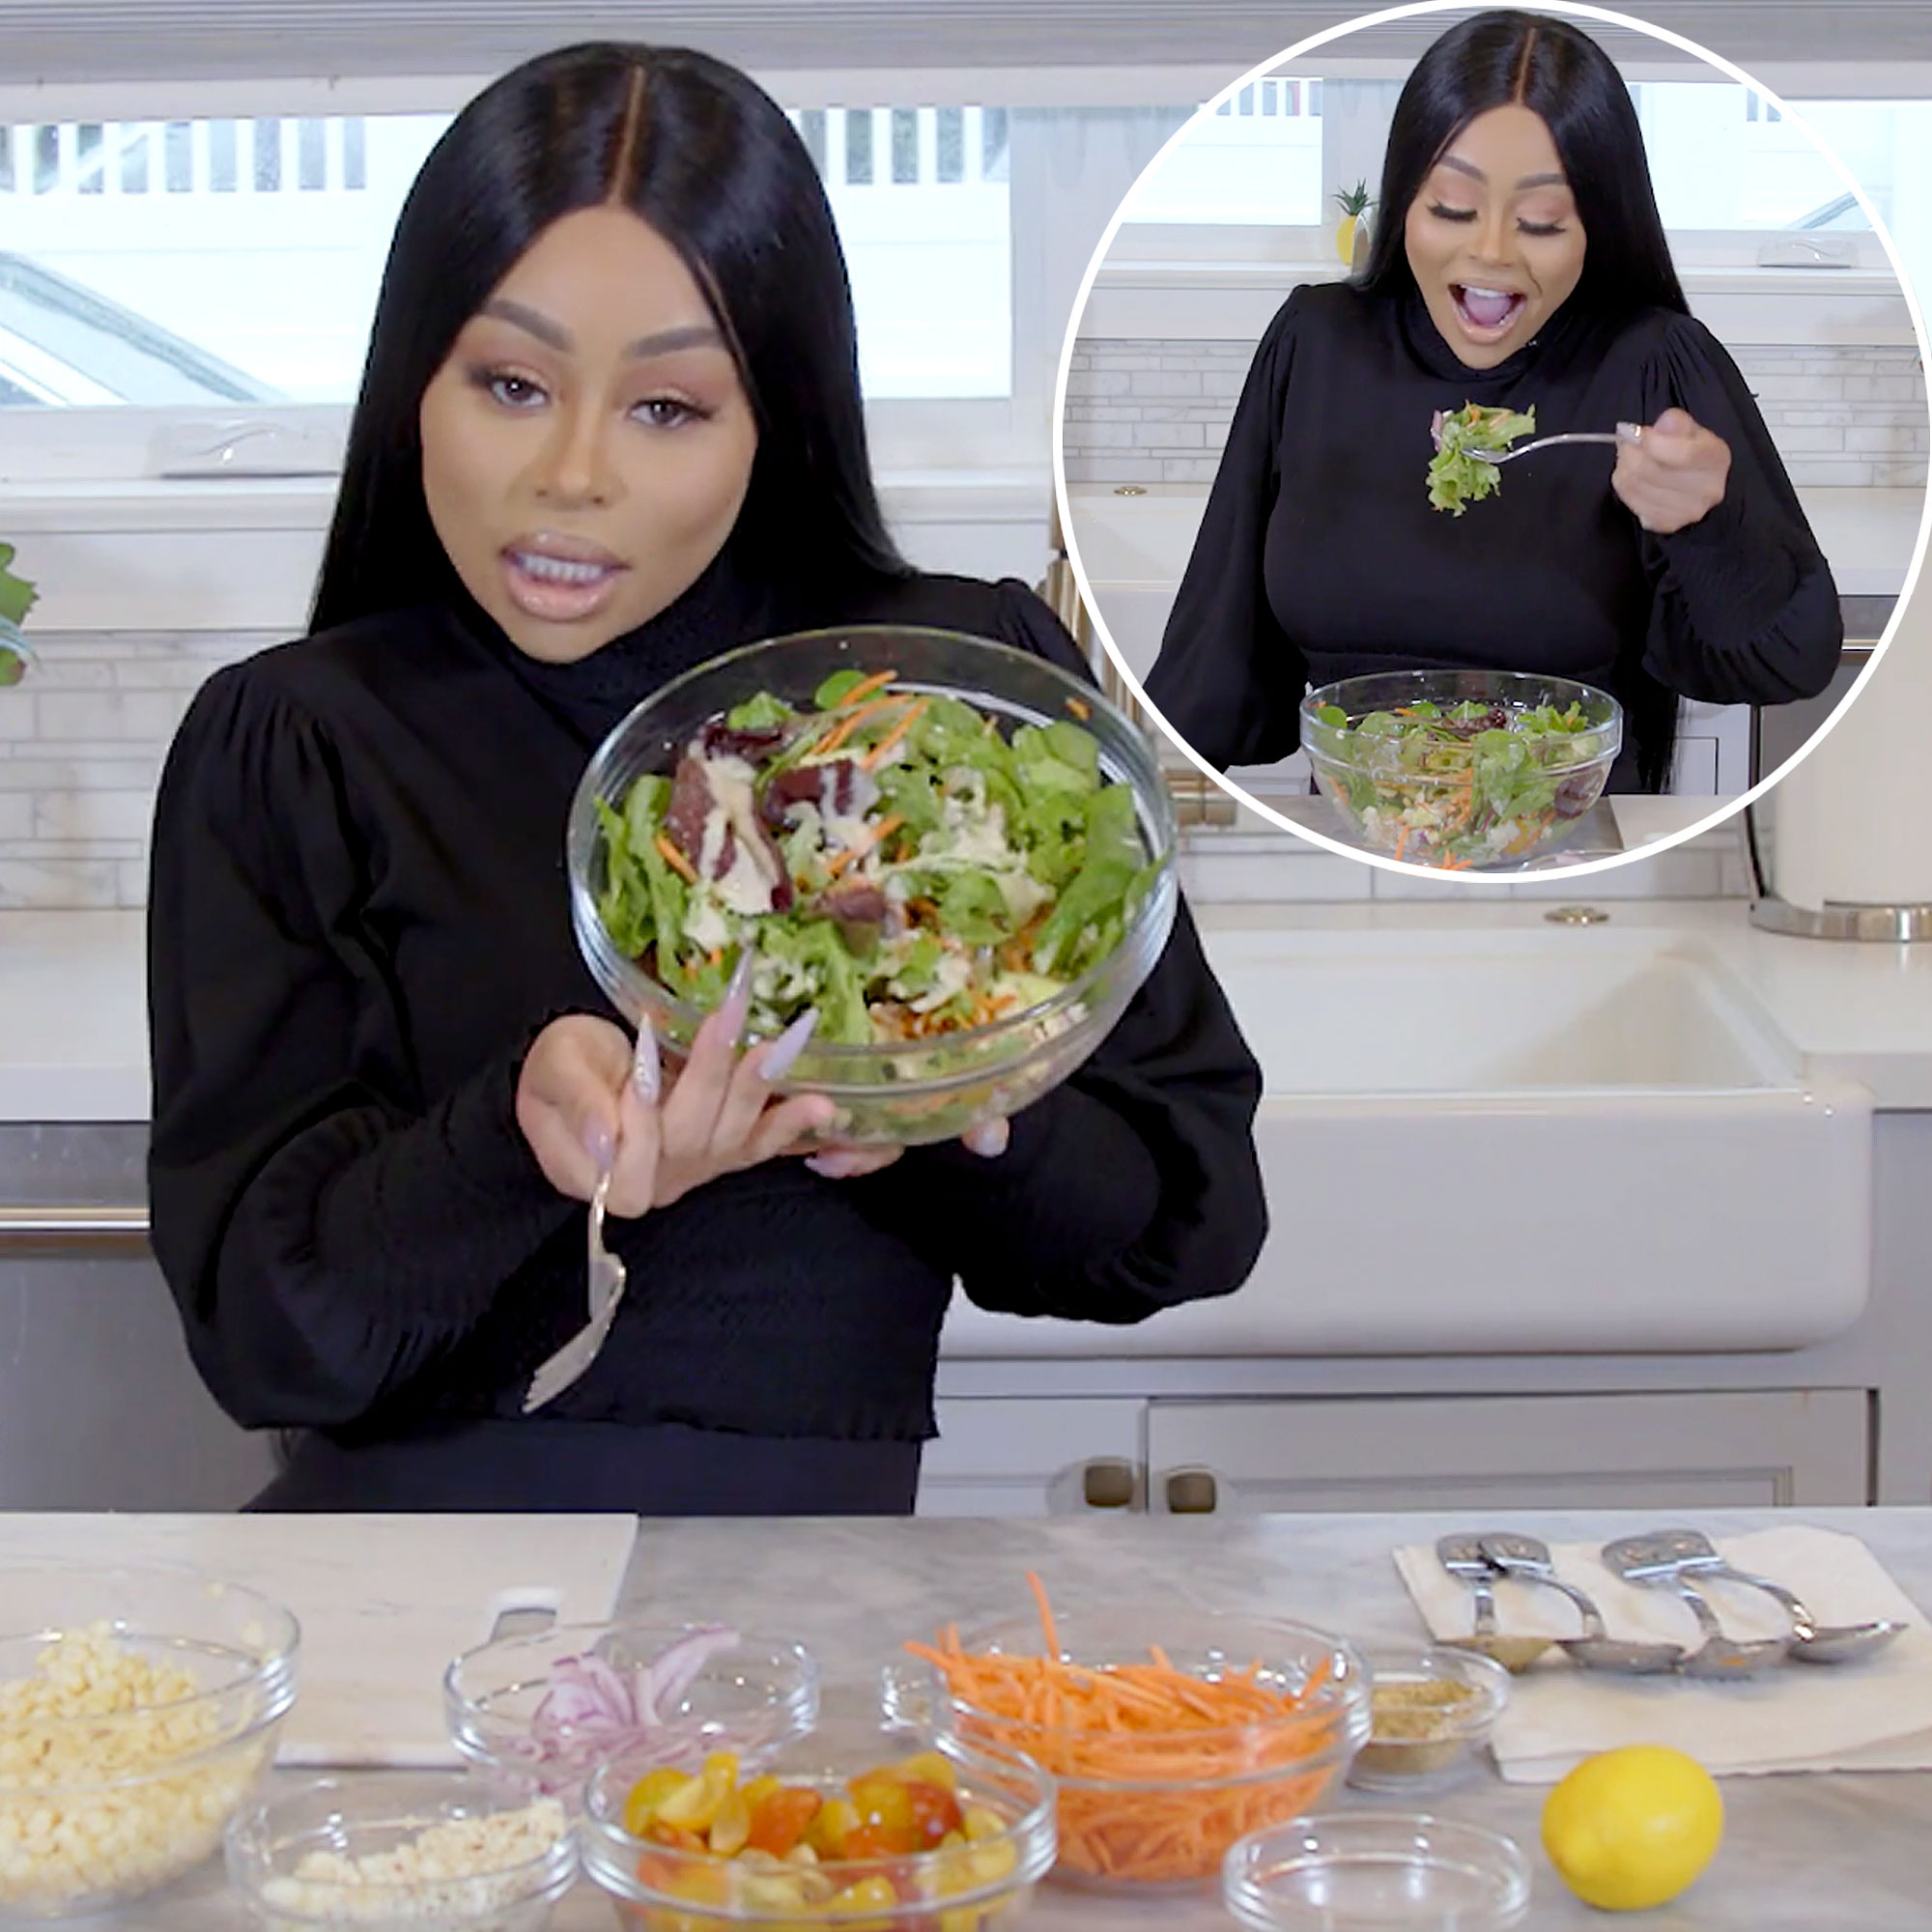 Bon Appétit! Blac Chyna Prepares Her Favorite 'Healthy and Easy' Salad: 'Now That's Perfection!'